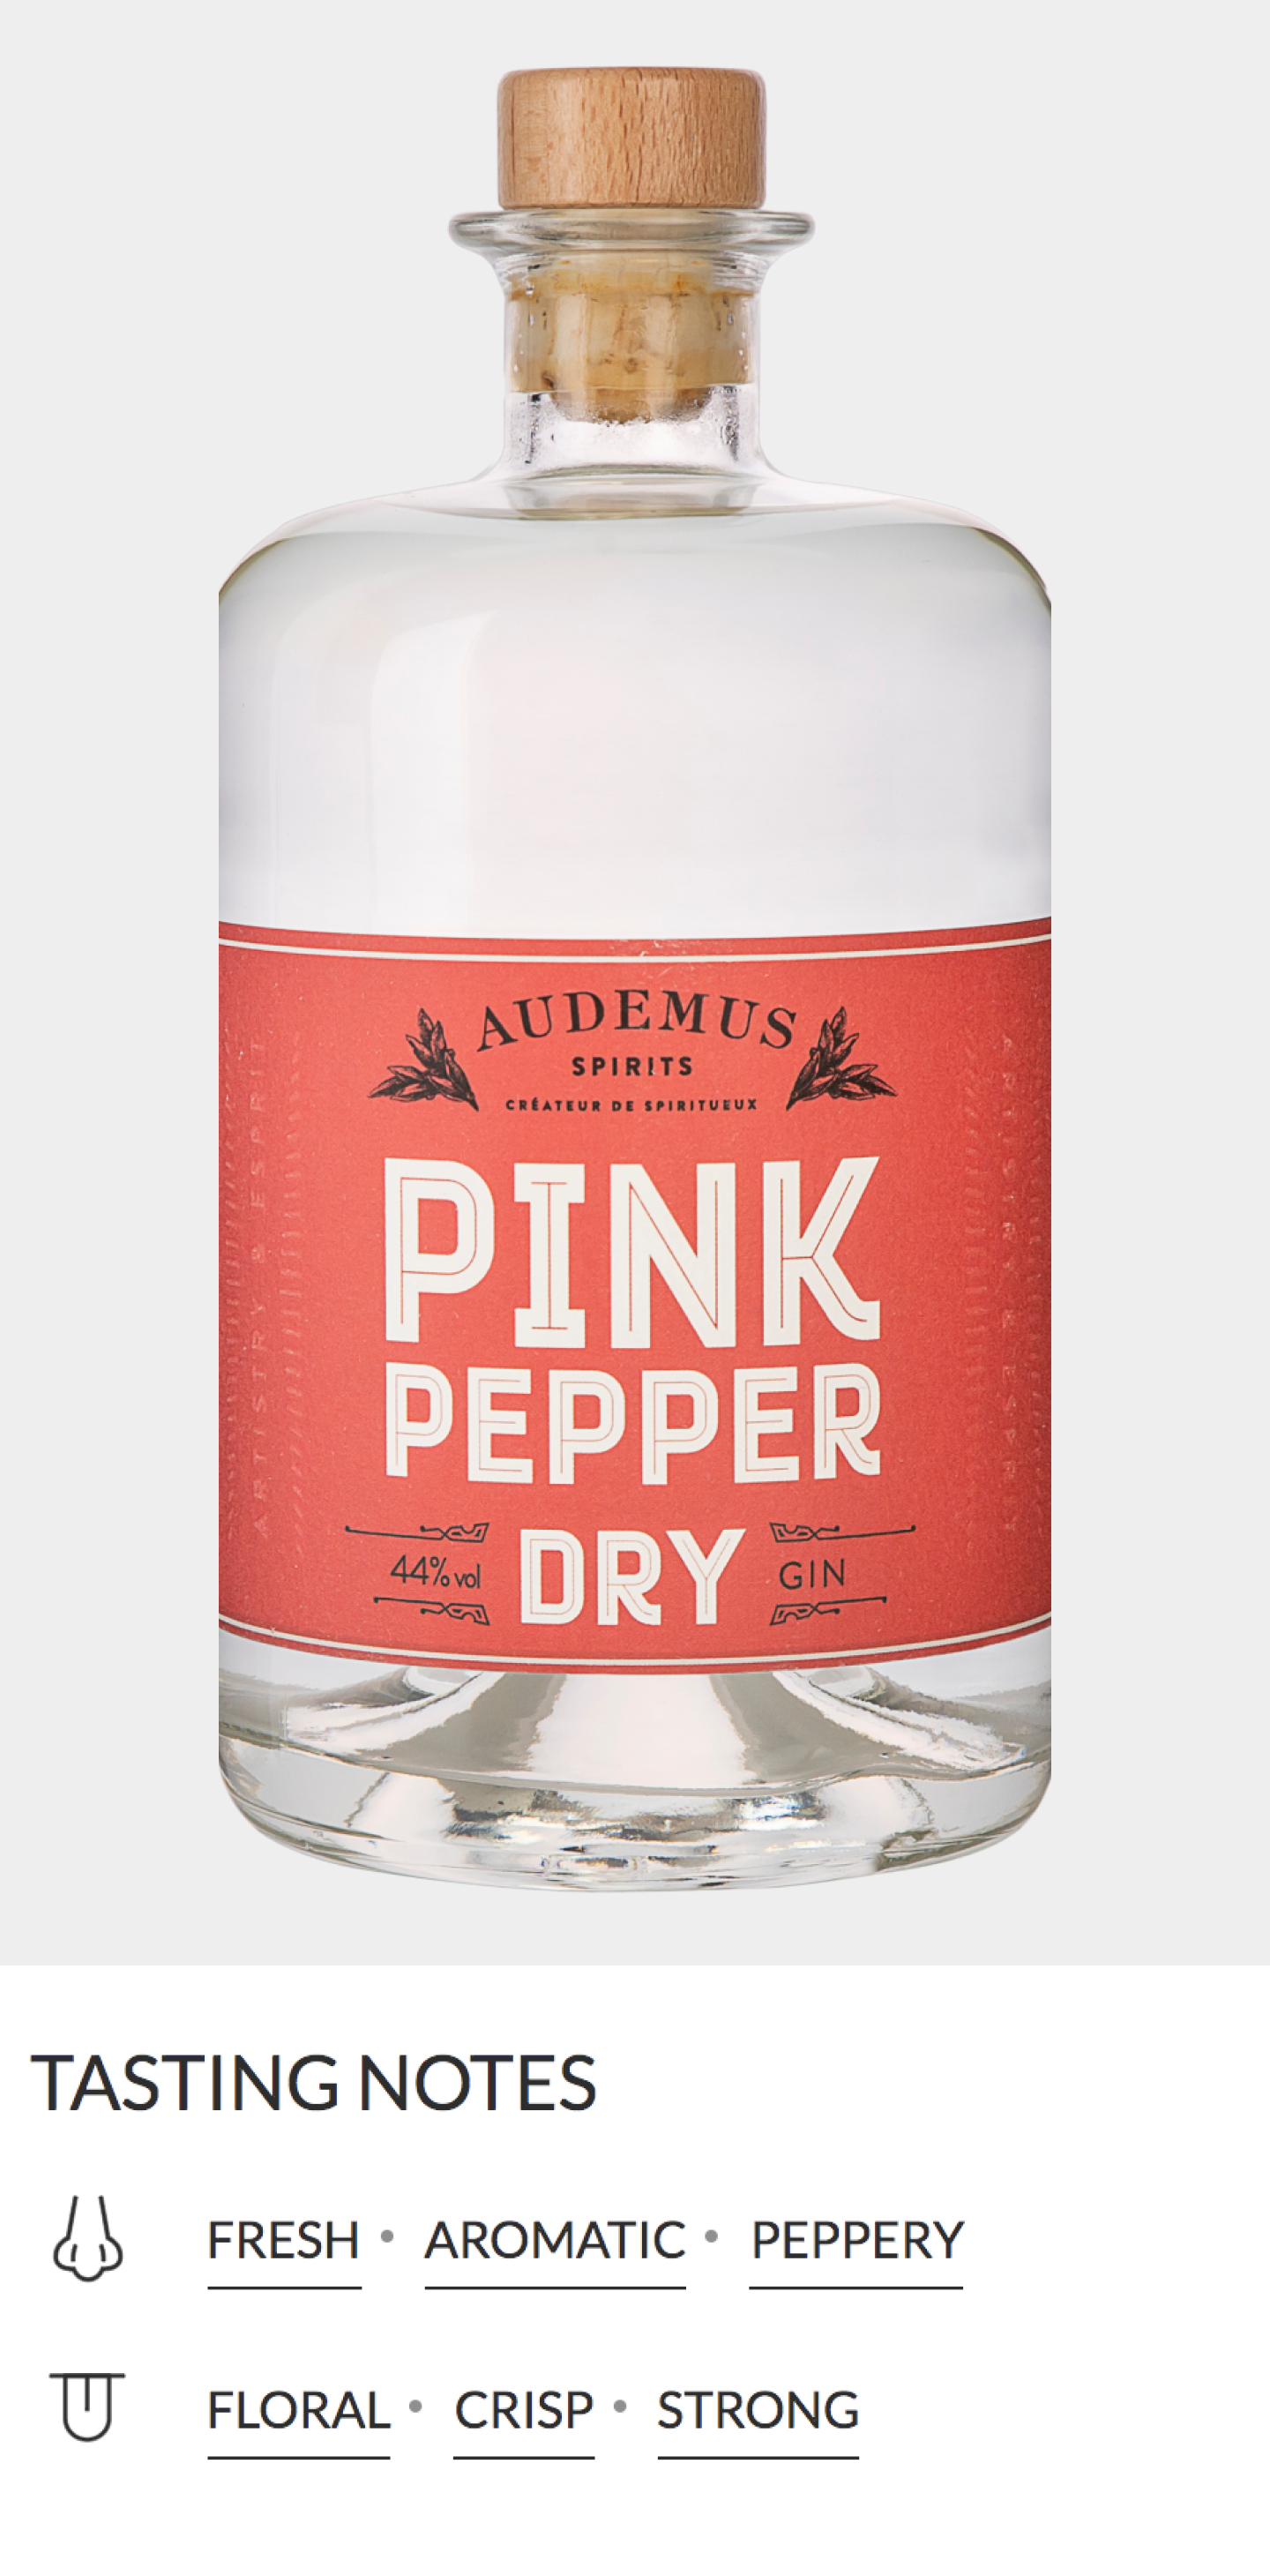 audemus-pink-pepper-dry-gin-mothers-day-france-2021